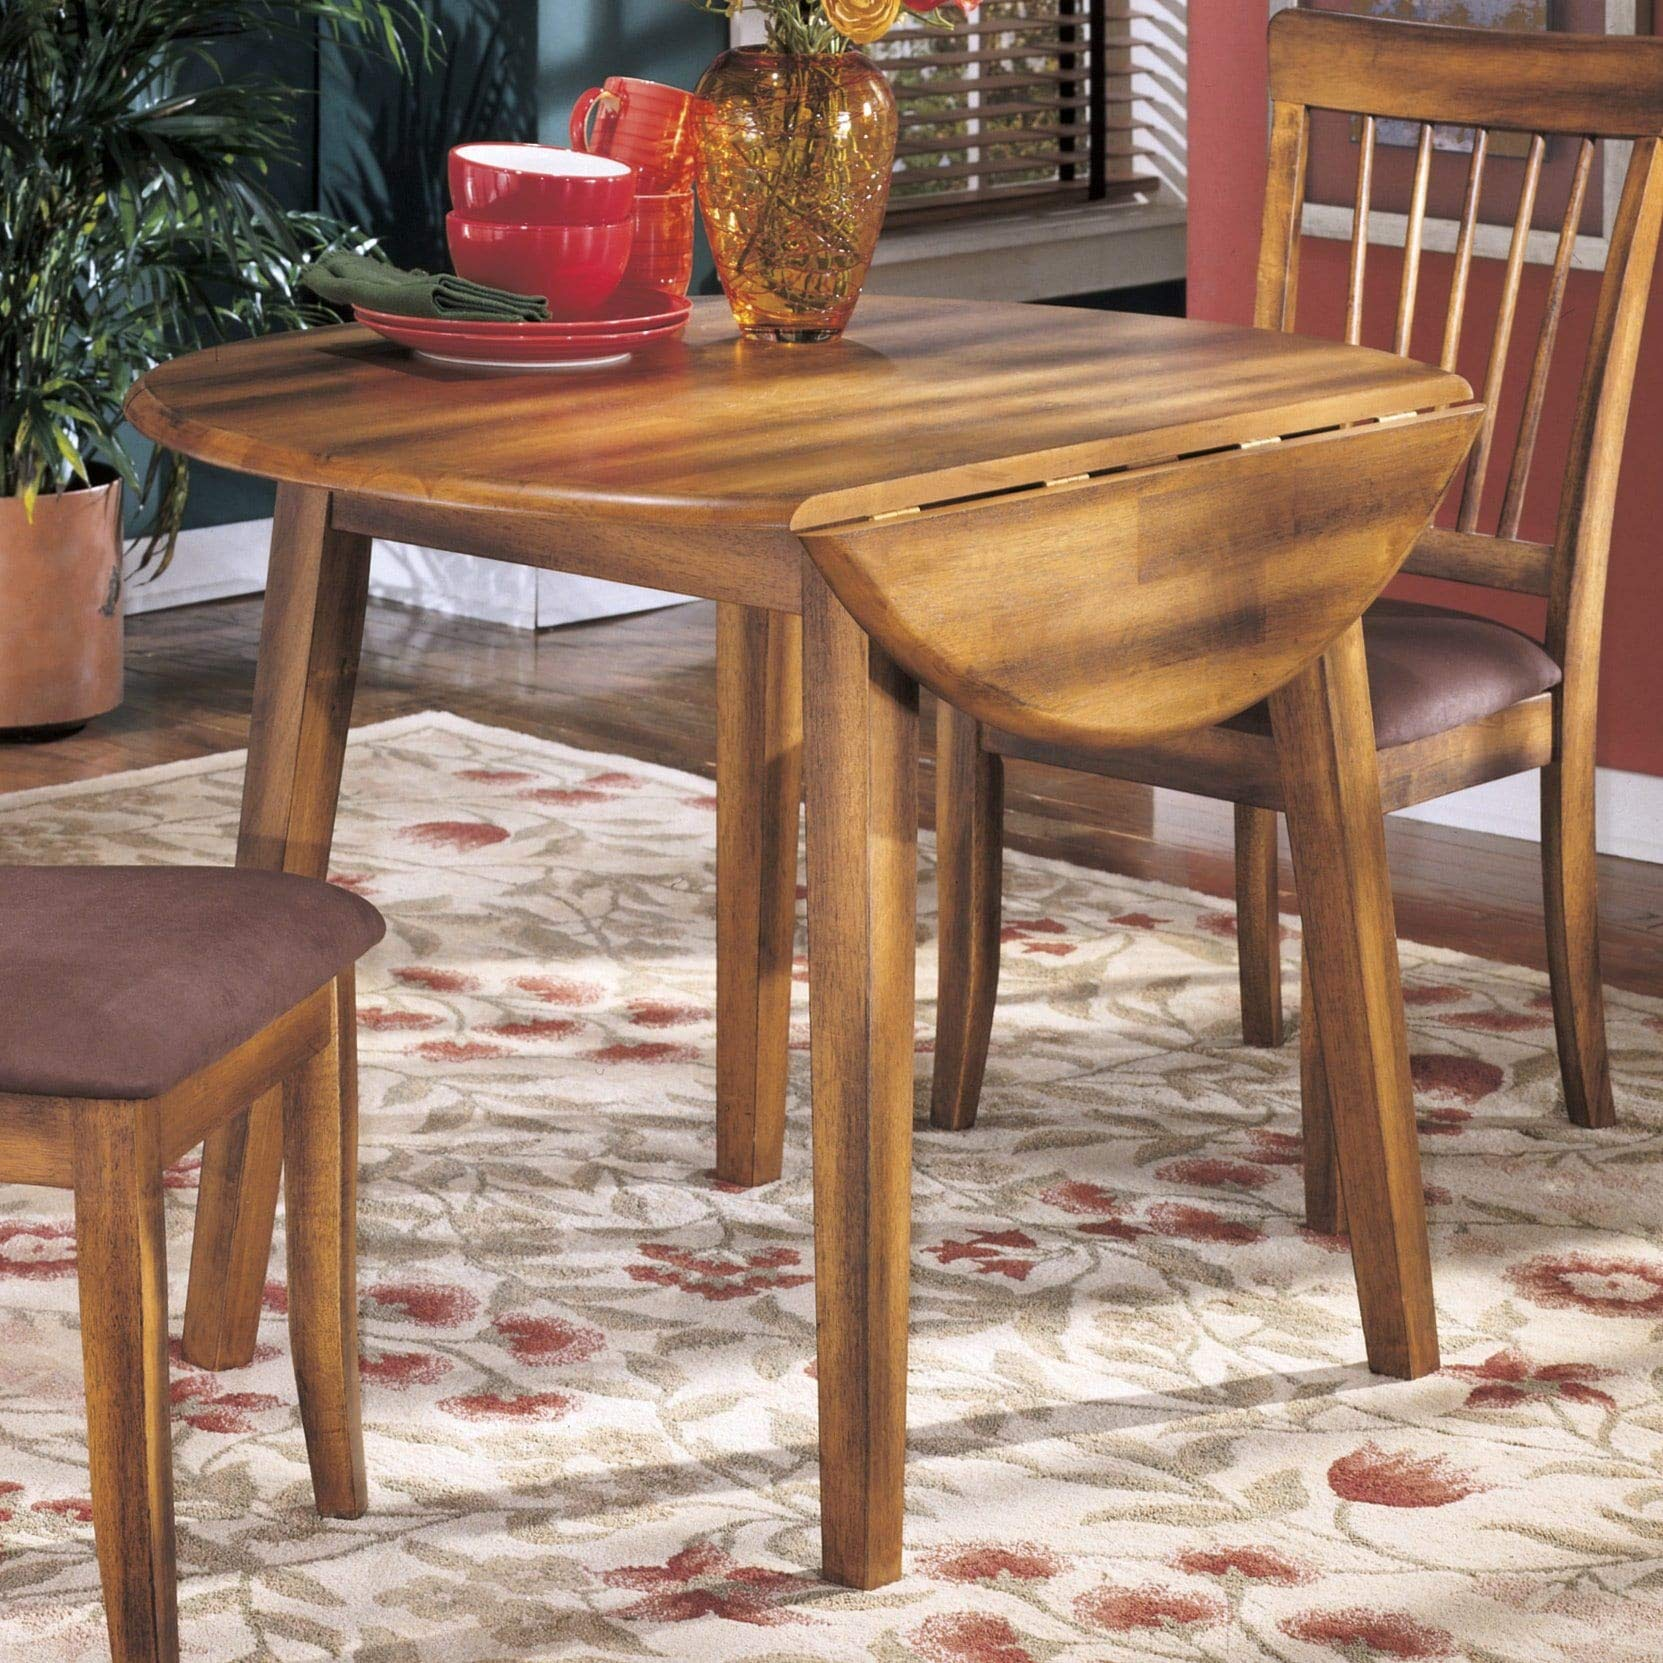 Signature Design by Ashley D199-15 Berringer Table, Brown by Signature Design by Ashley